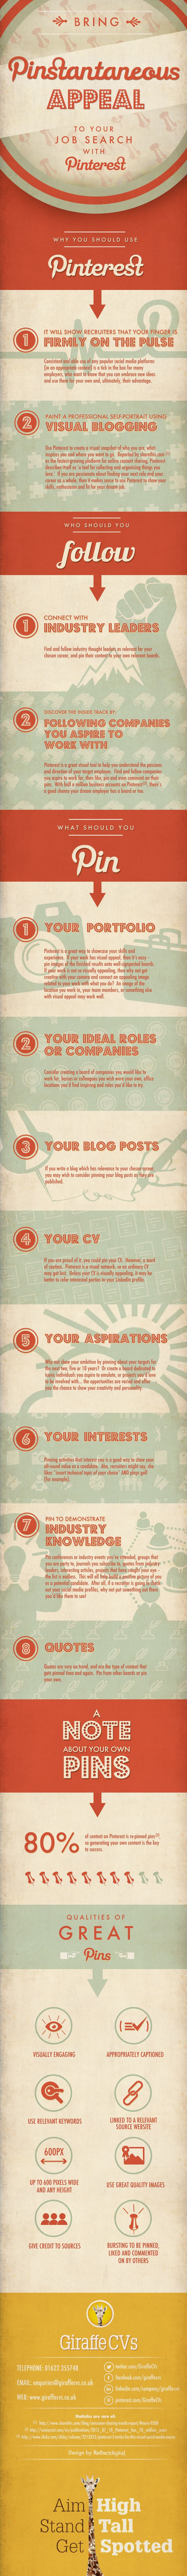 #Pinterest #infographic: Bring Pinstantaneous appeal to your job search with Pinterest by CV writing service Giraffe CVs.  http://www.giraffecvs.co.uk/pinterest-infographic/